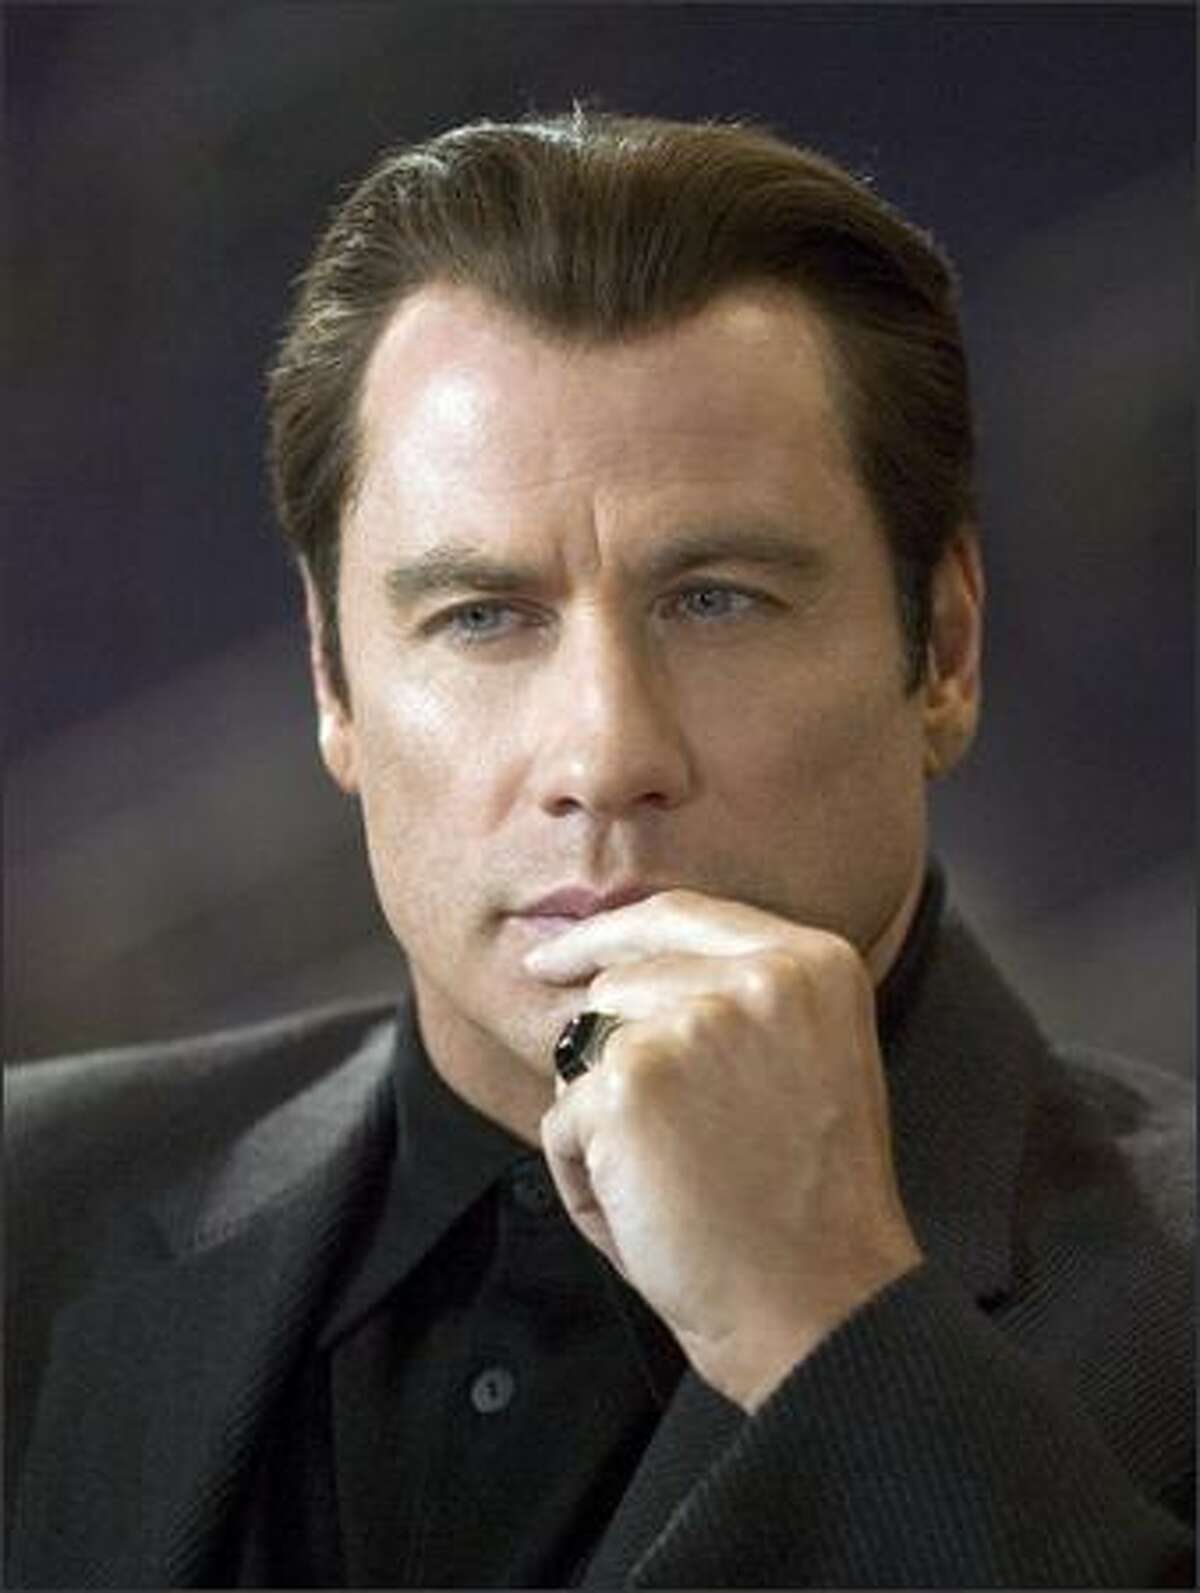 """John Travolta stars as Chili Palmer, the same character he played in """"Get Shorty."""""""